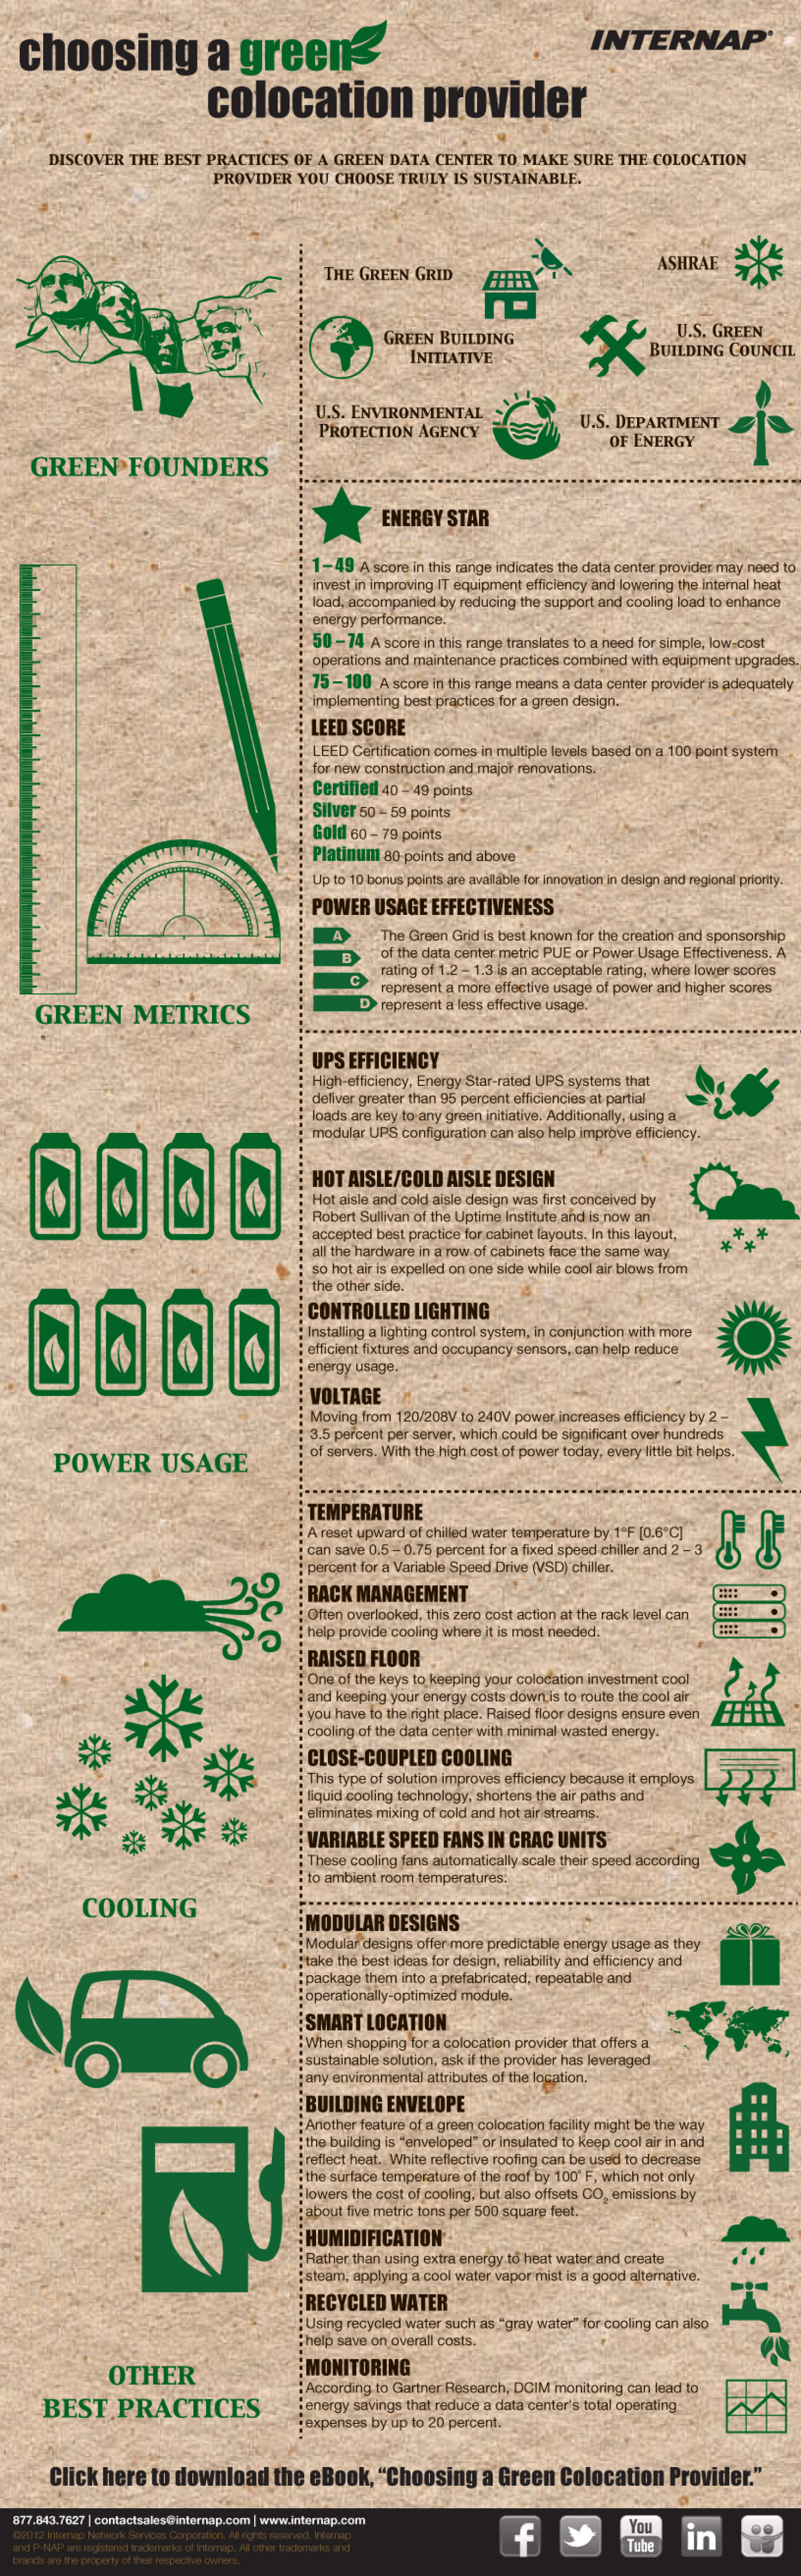 Choosing a green colocation provider Infographic